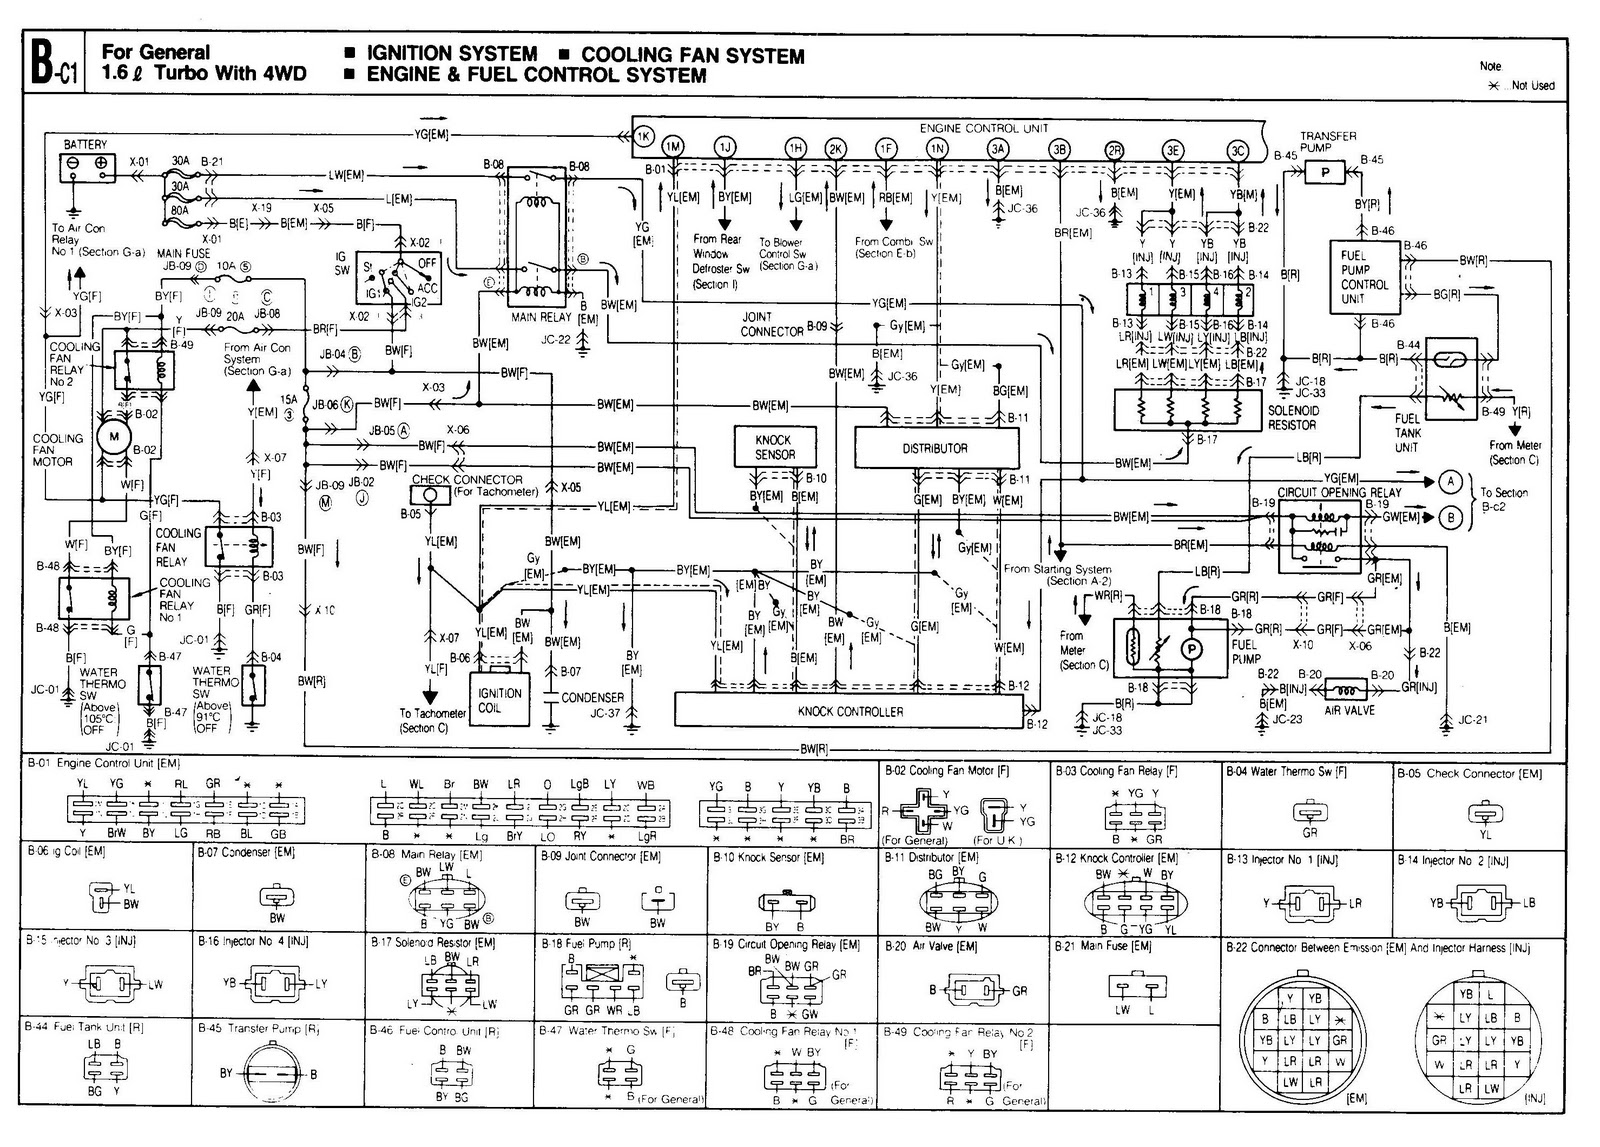 Th400 Transmission Diagram as well 2010 Gmc Yukon Xl Engine Diagram further Allison Sd Sensor Location moreover odicis likewise Ford F Fuse Box Diagram Wiring Diagrams Schemes Trucks. on ford 3 sd manual transmission